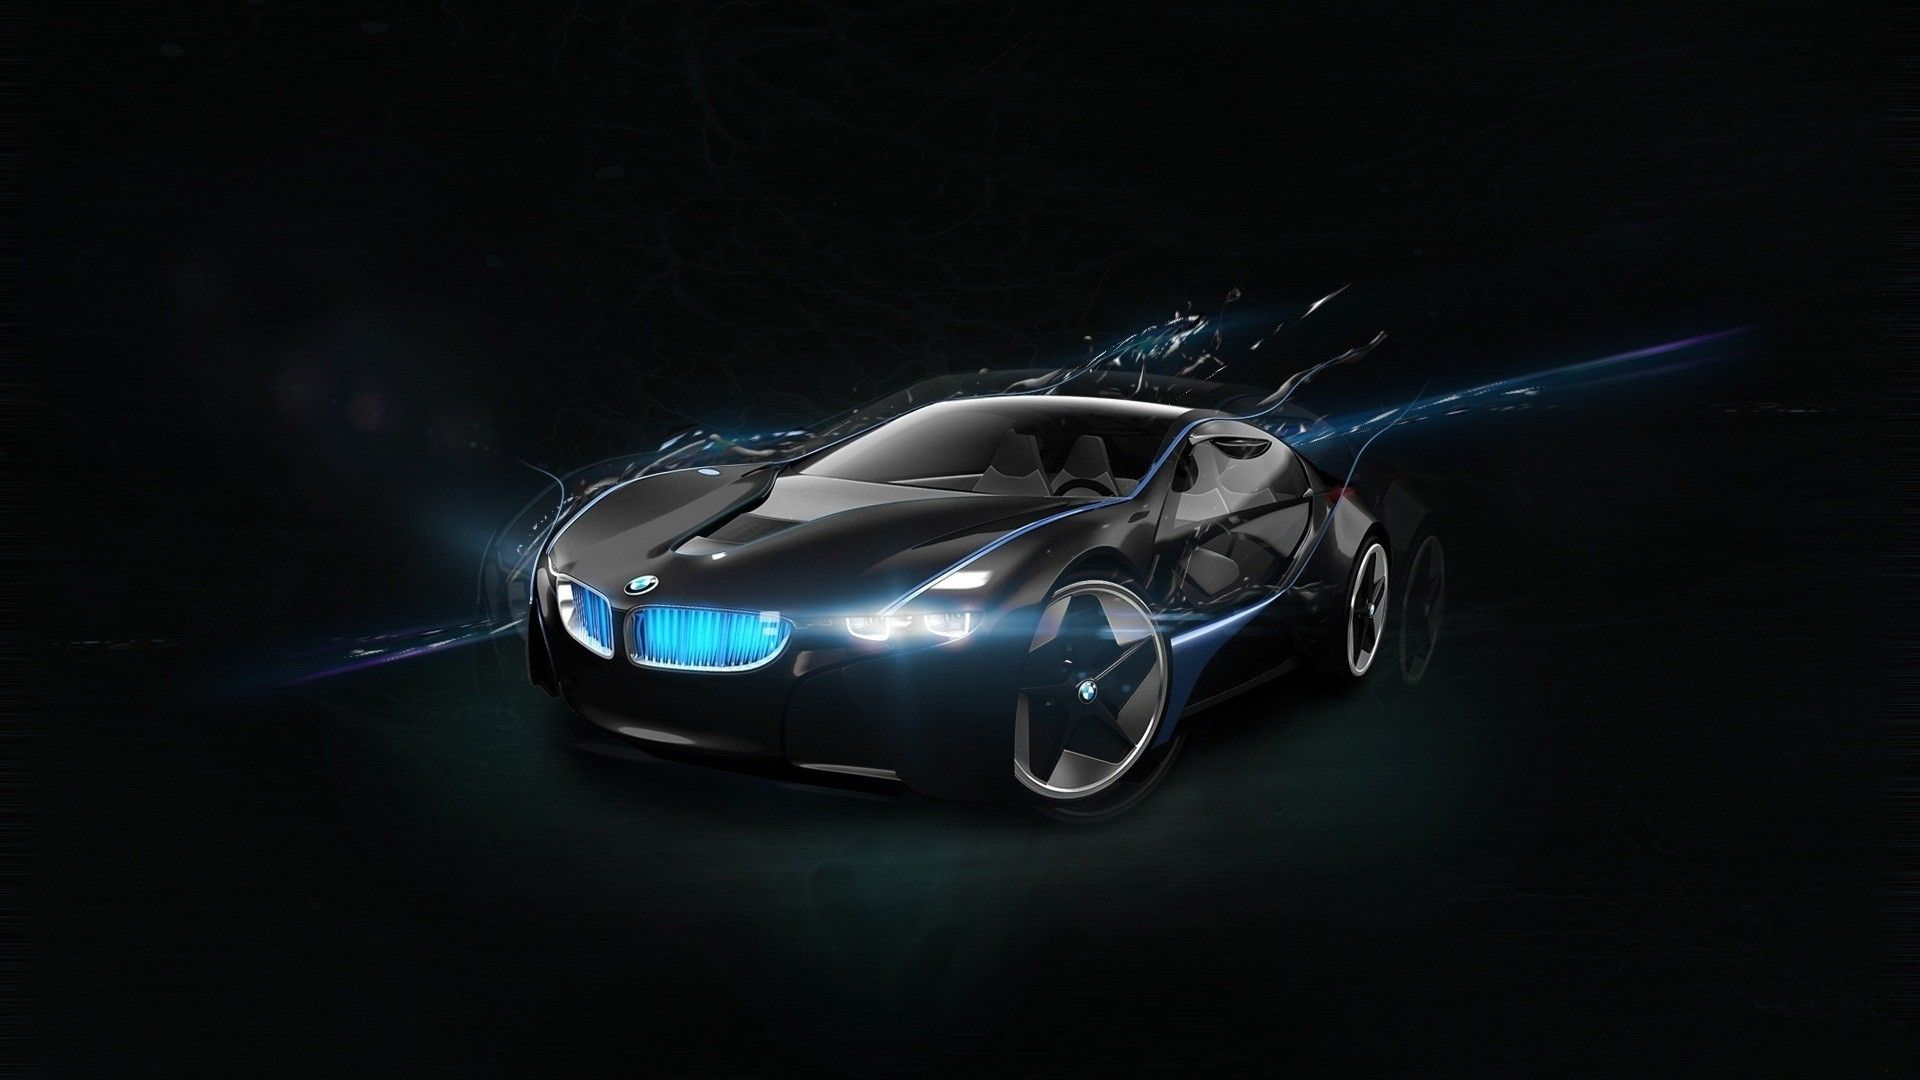 3d Wallpapers Cars Image 8